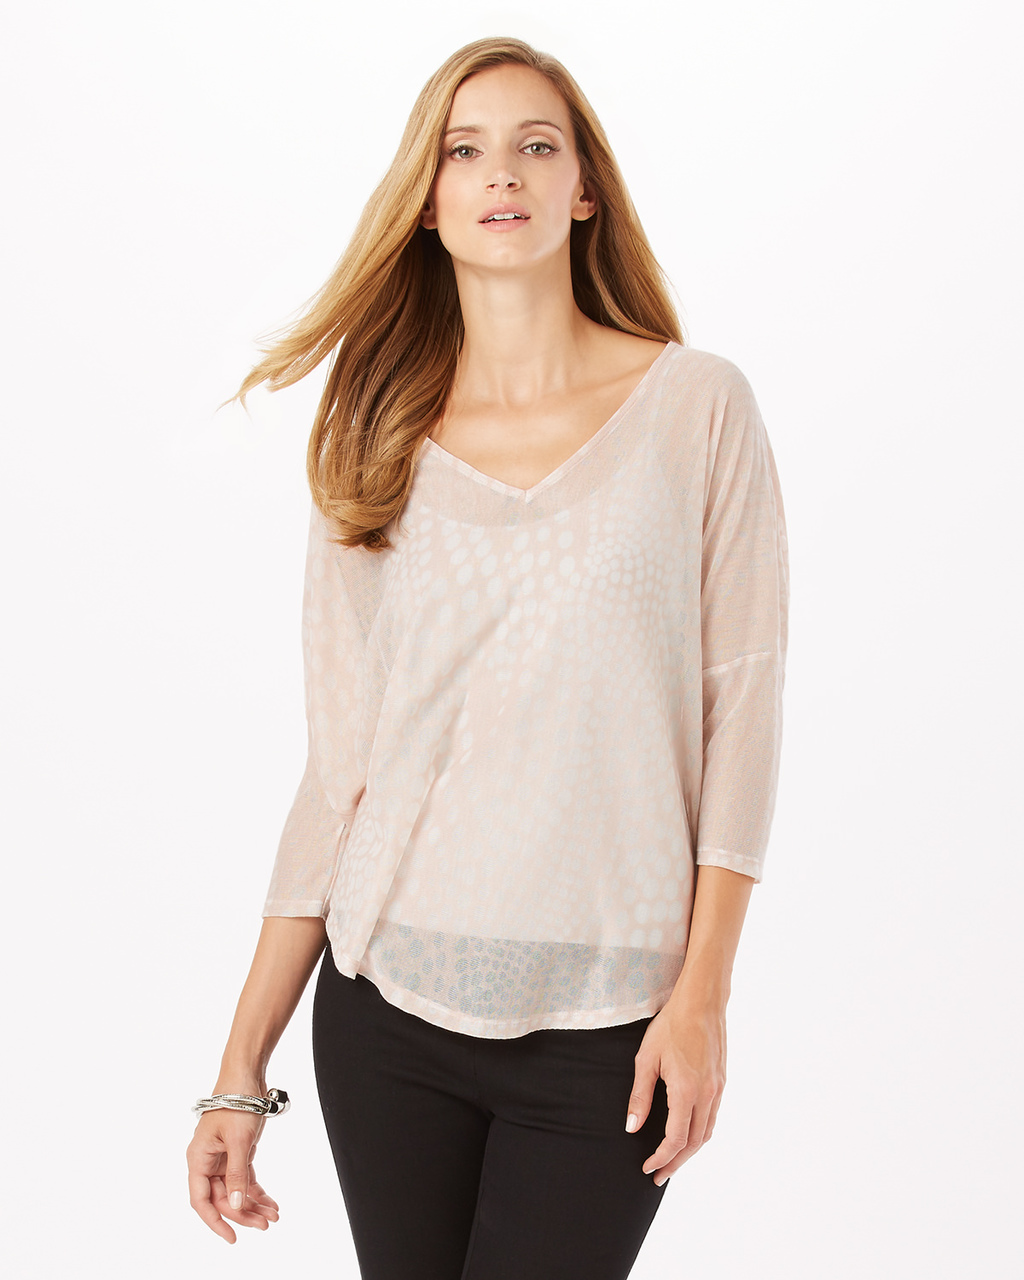 Spot Burnout Top - neckline: v-neck; pattern: plain; predominant colour: blush; occasions: casual; length: standard; style: top; fibres: polyester/polyamide - 100%; fit: body skimming; sleeve length: 3/4 length; sleeve style: standard; texture group: sheer fabrics/chiffon/organza etc.; pattern type: fabric; wardrobe: basic; season: a/w 2016